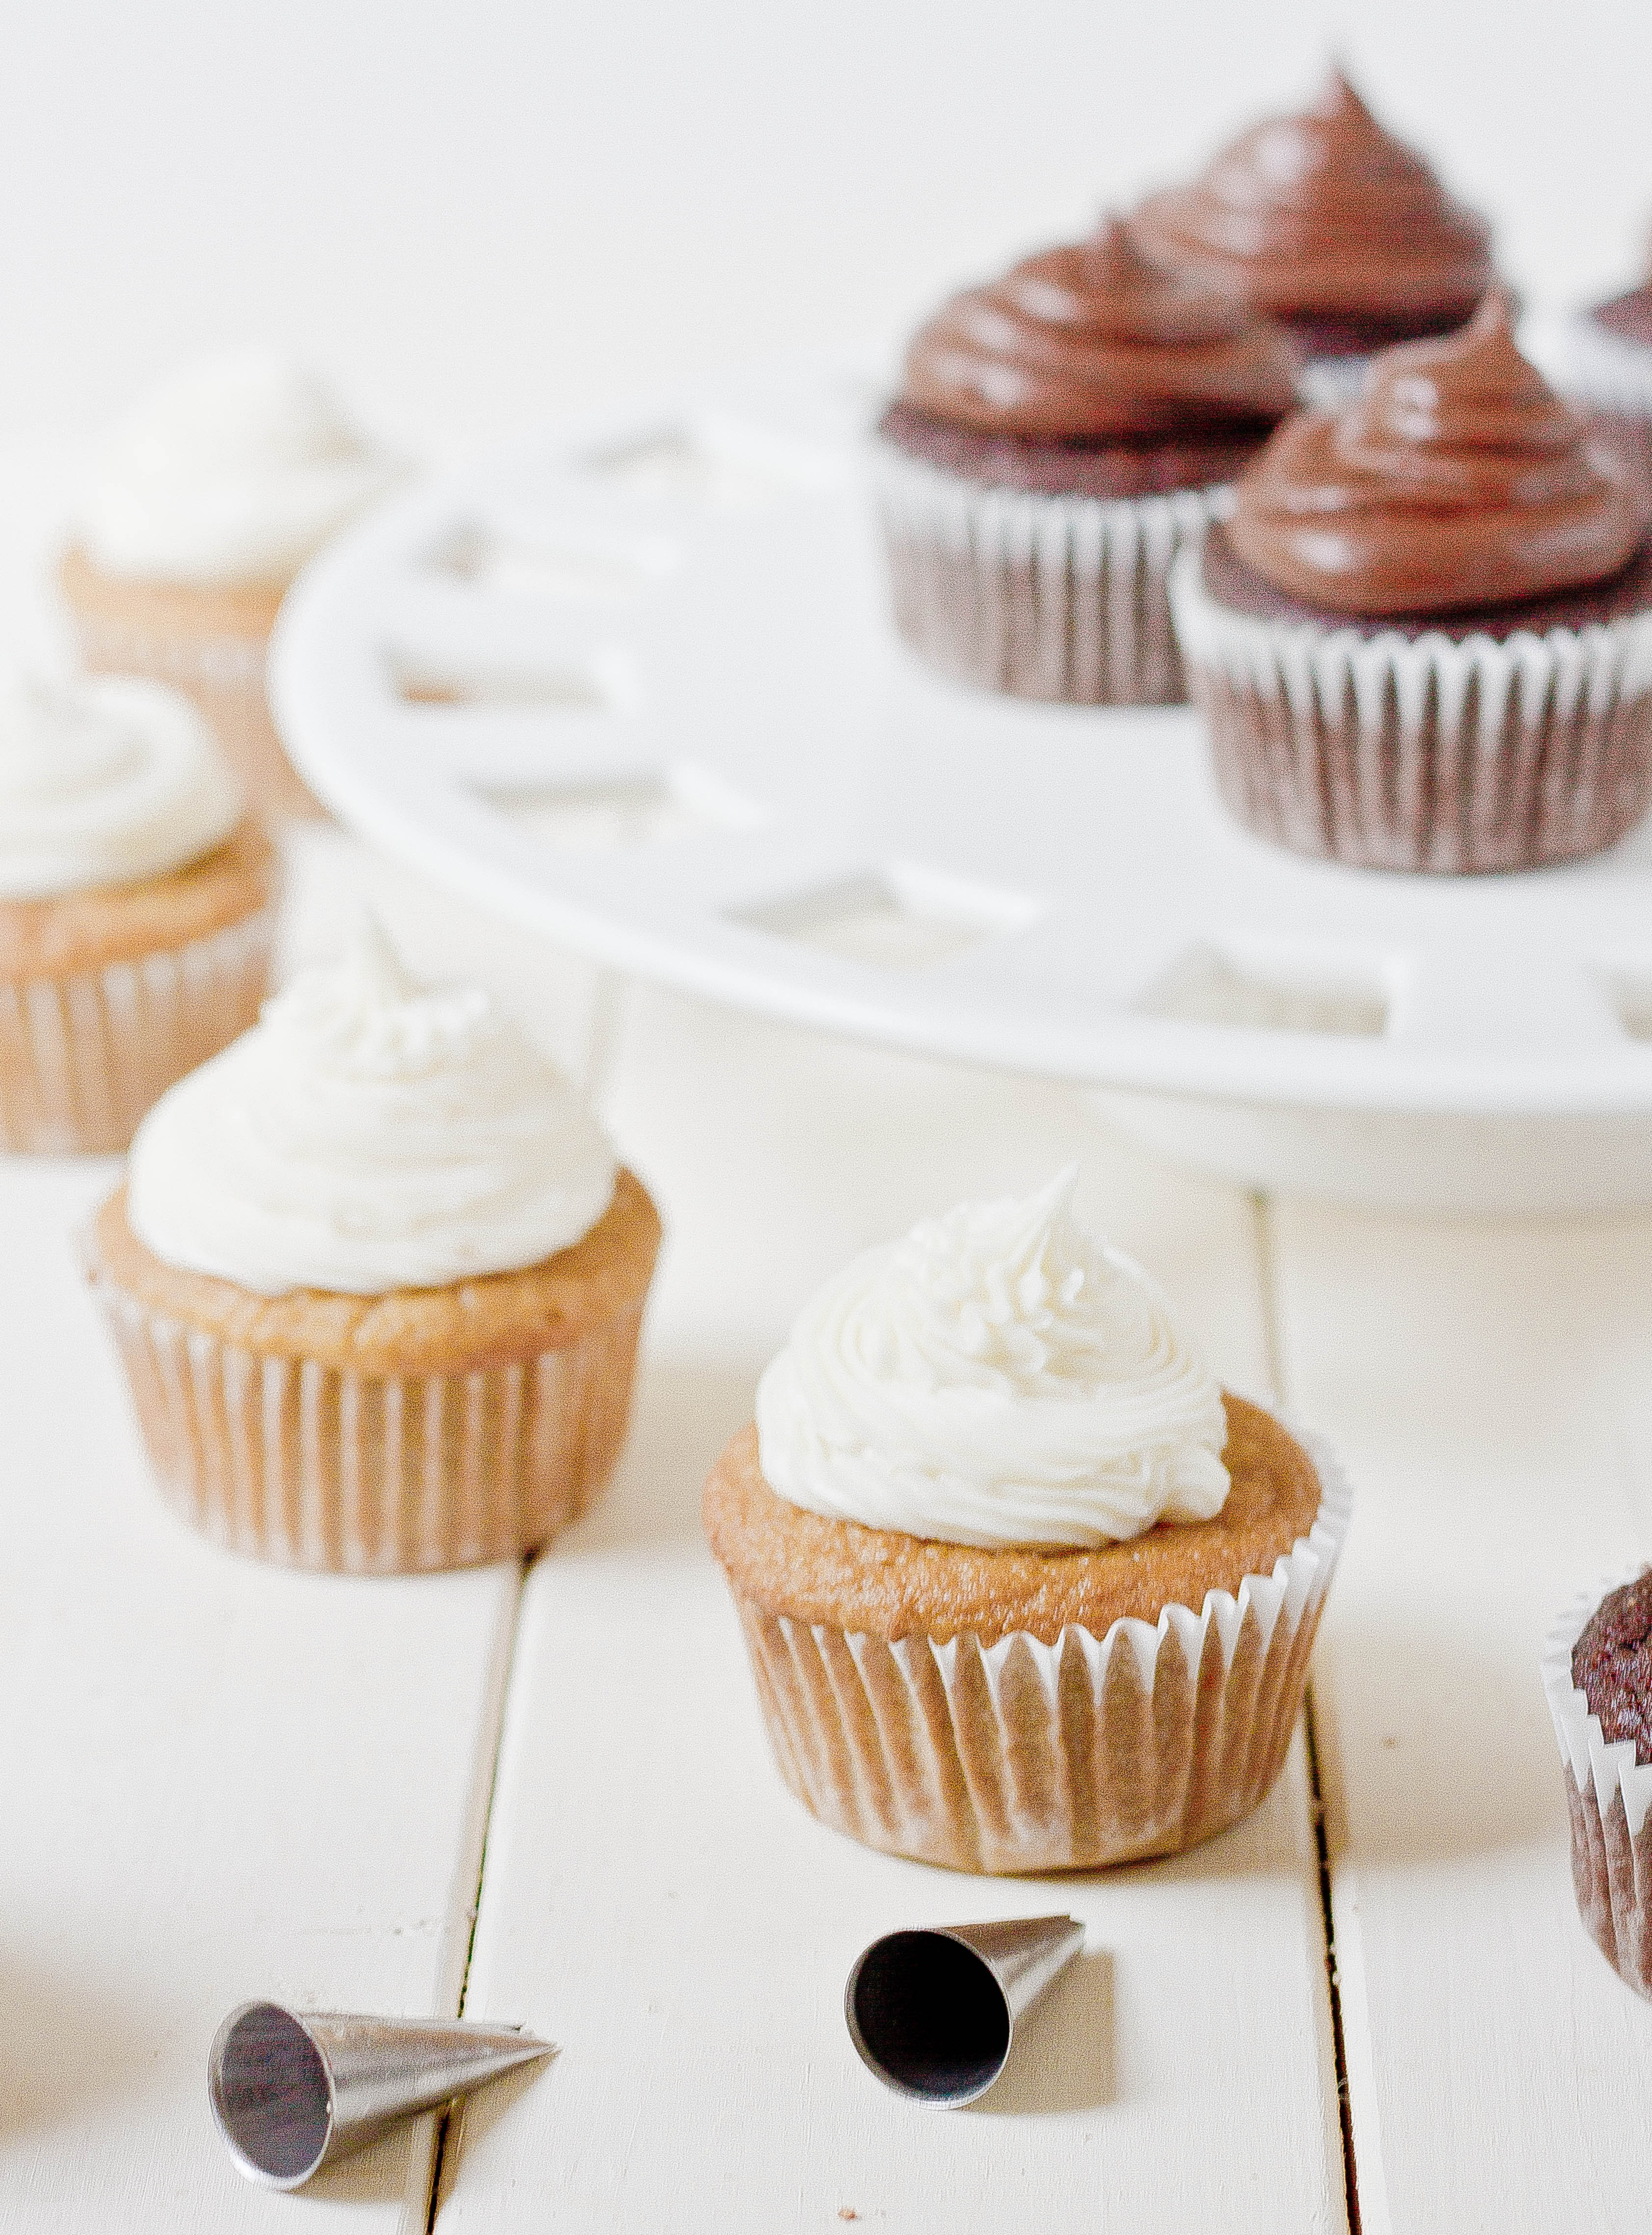 ... you like this recipe, you might also like paleo chocolate cupcakes